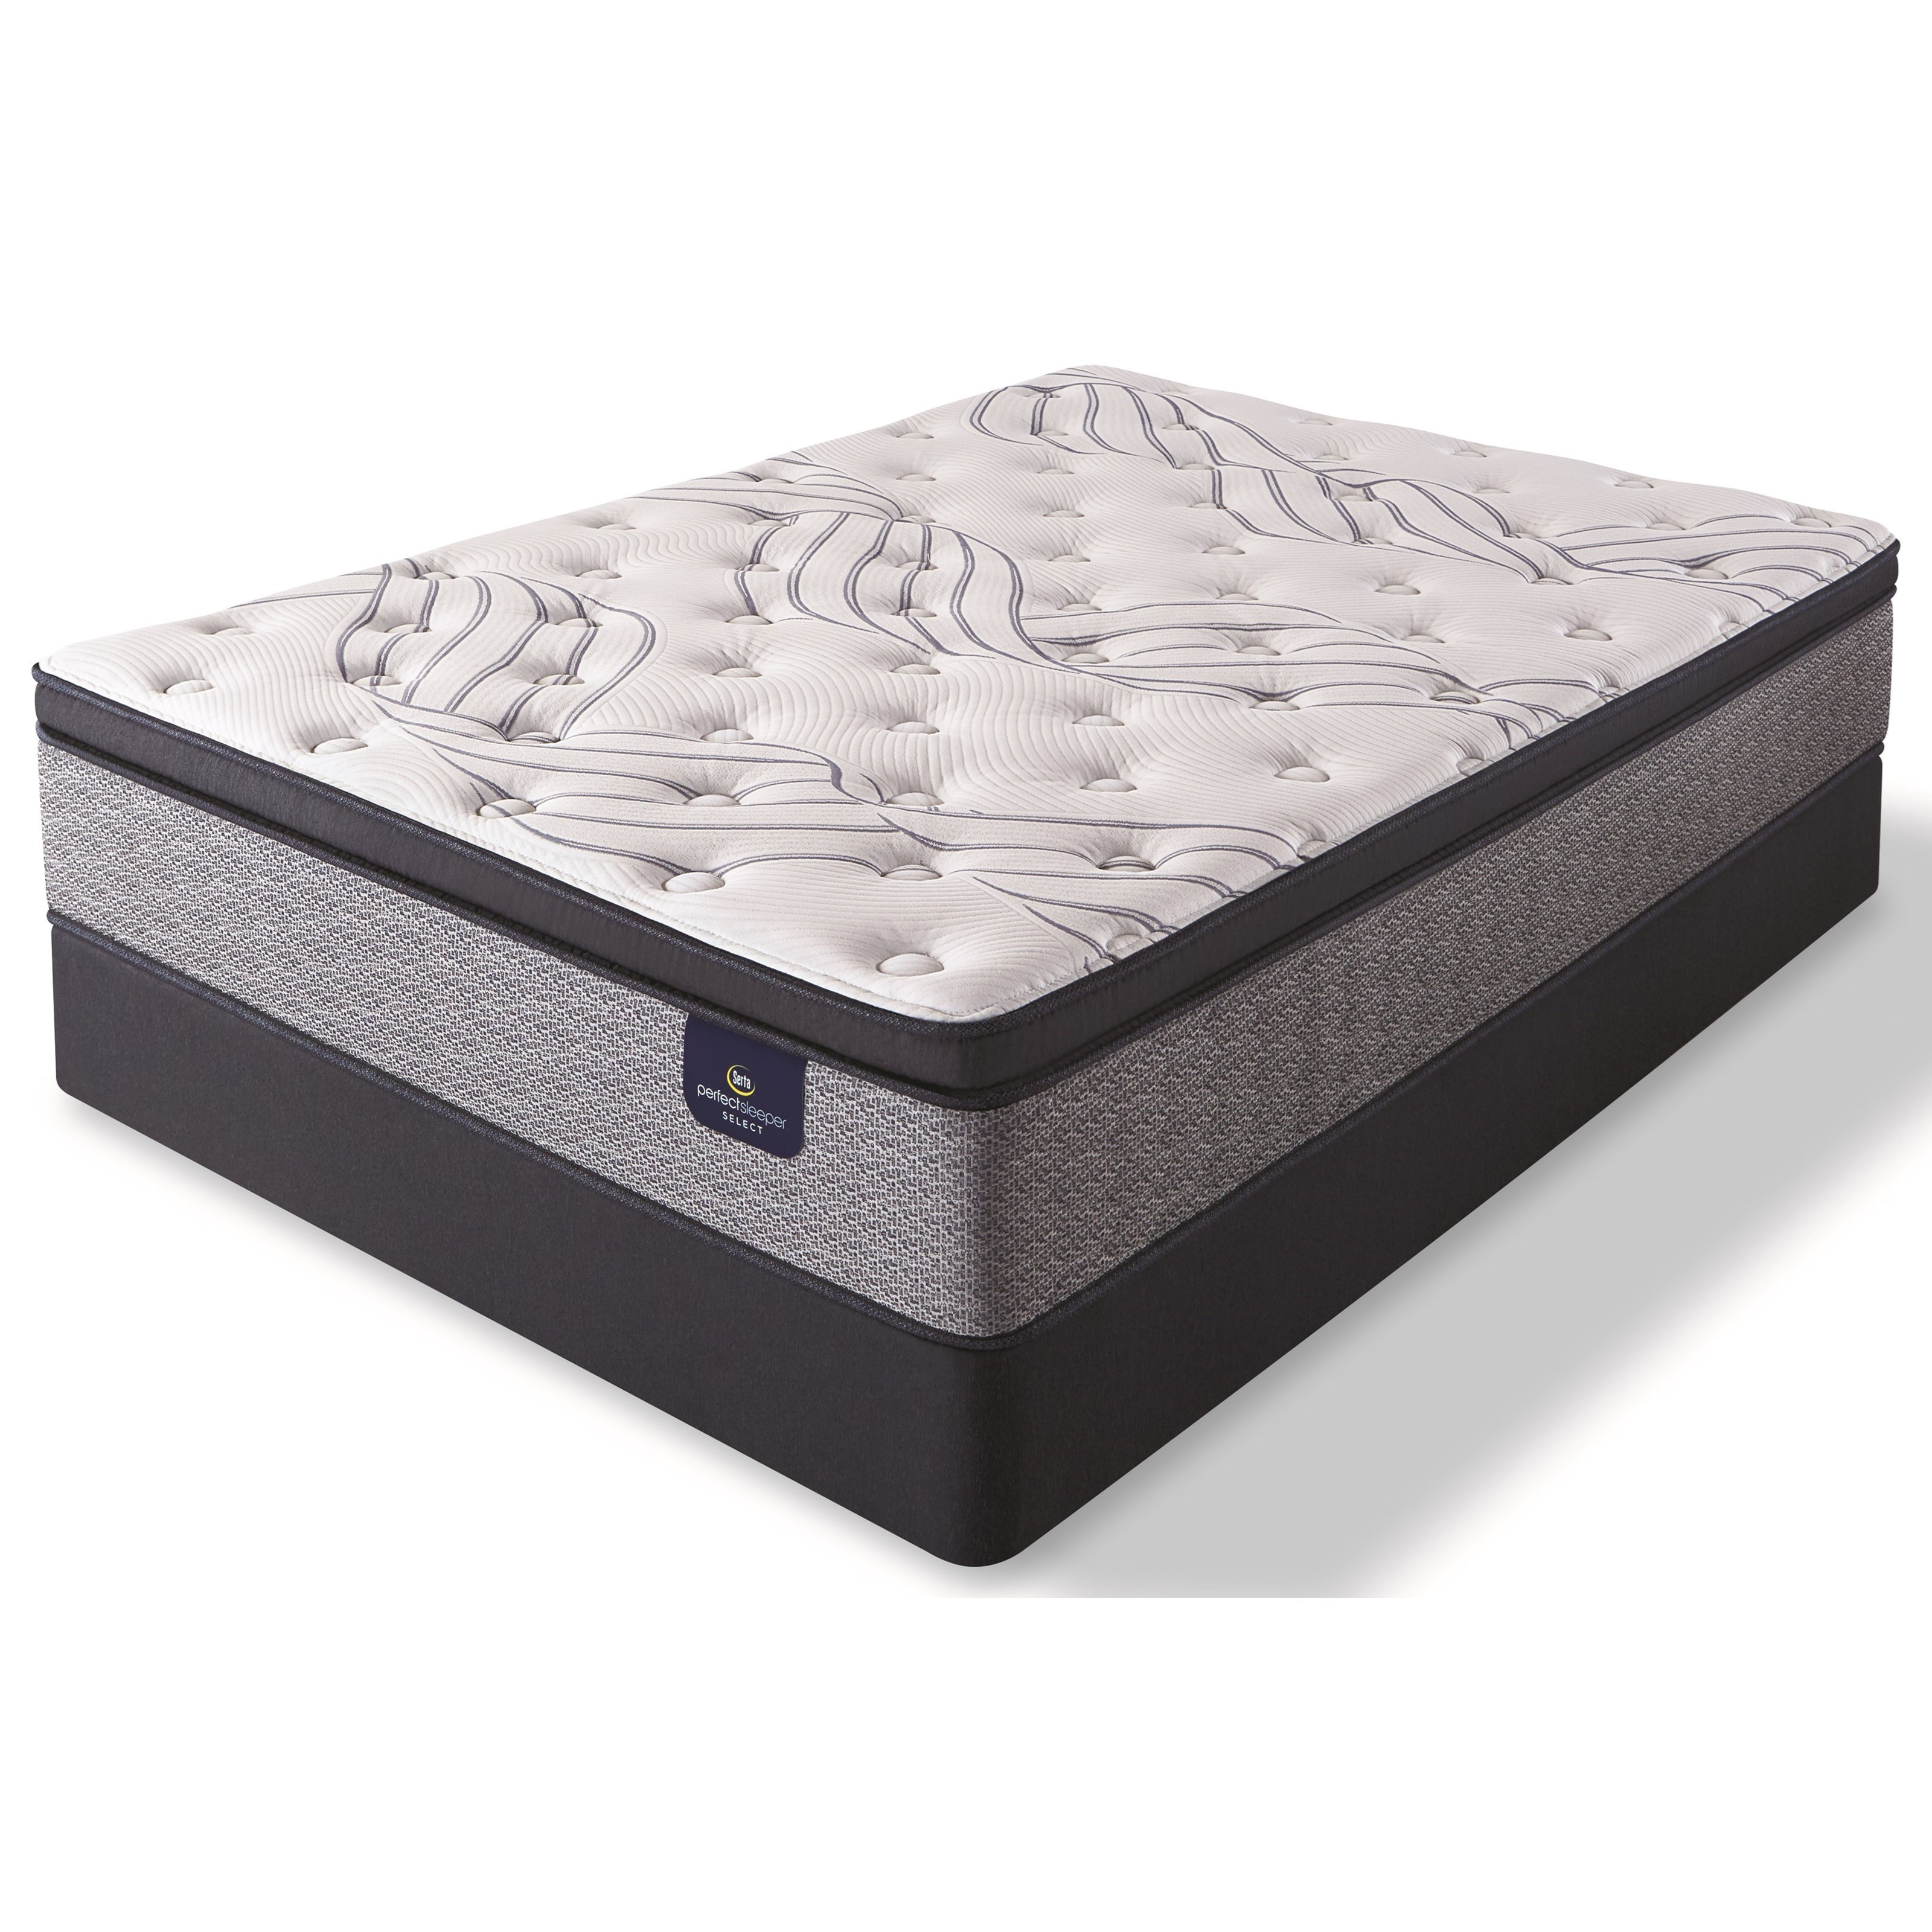 Mayville PPT Twin XL Pocketed Coil Mattress Set by Serta at Walker's Mattress